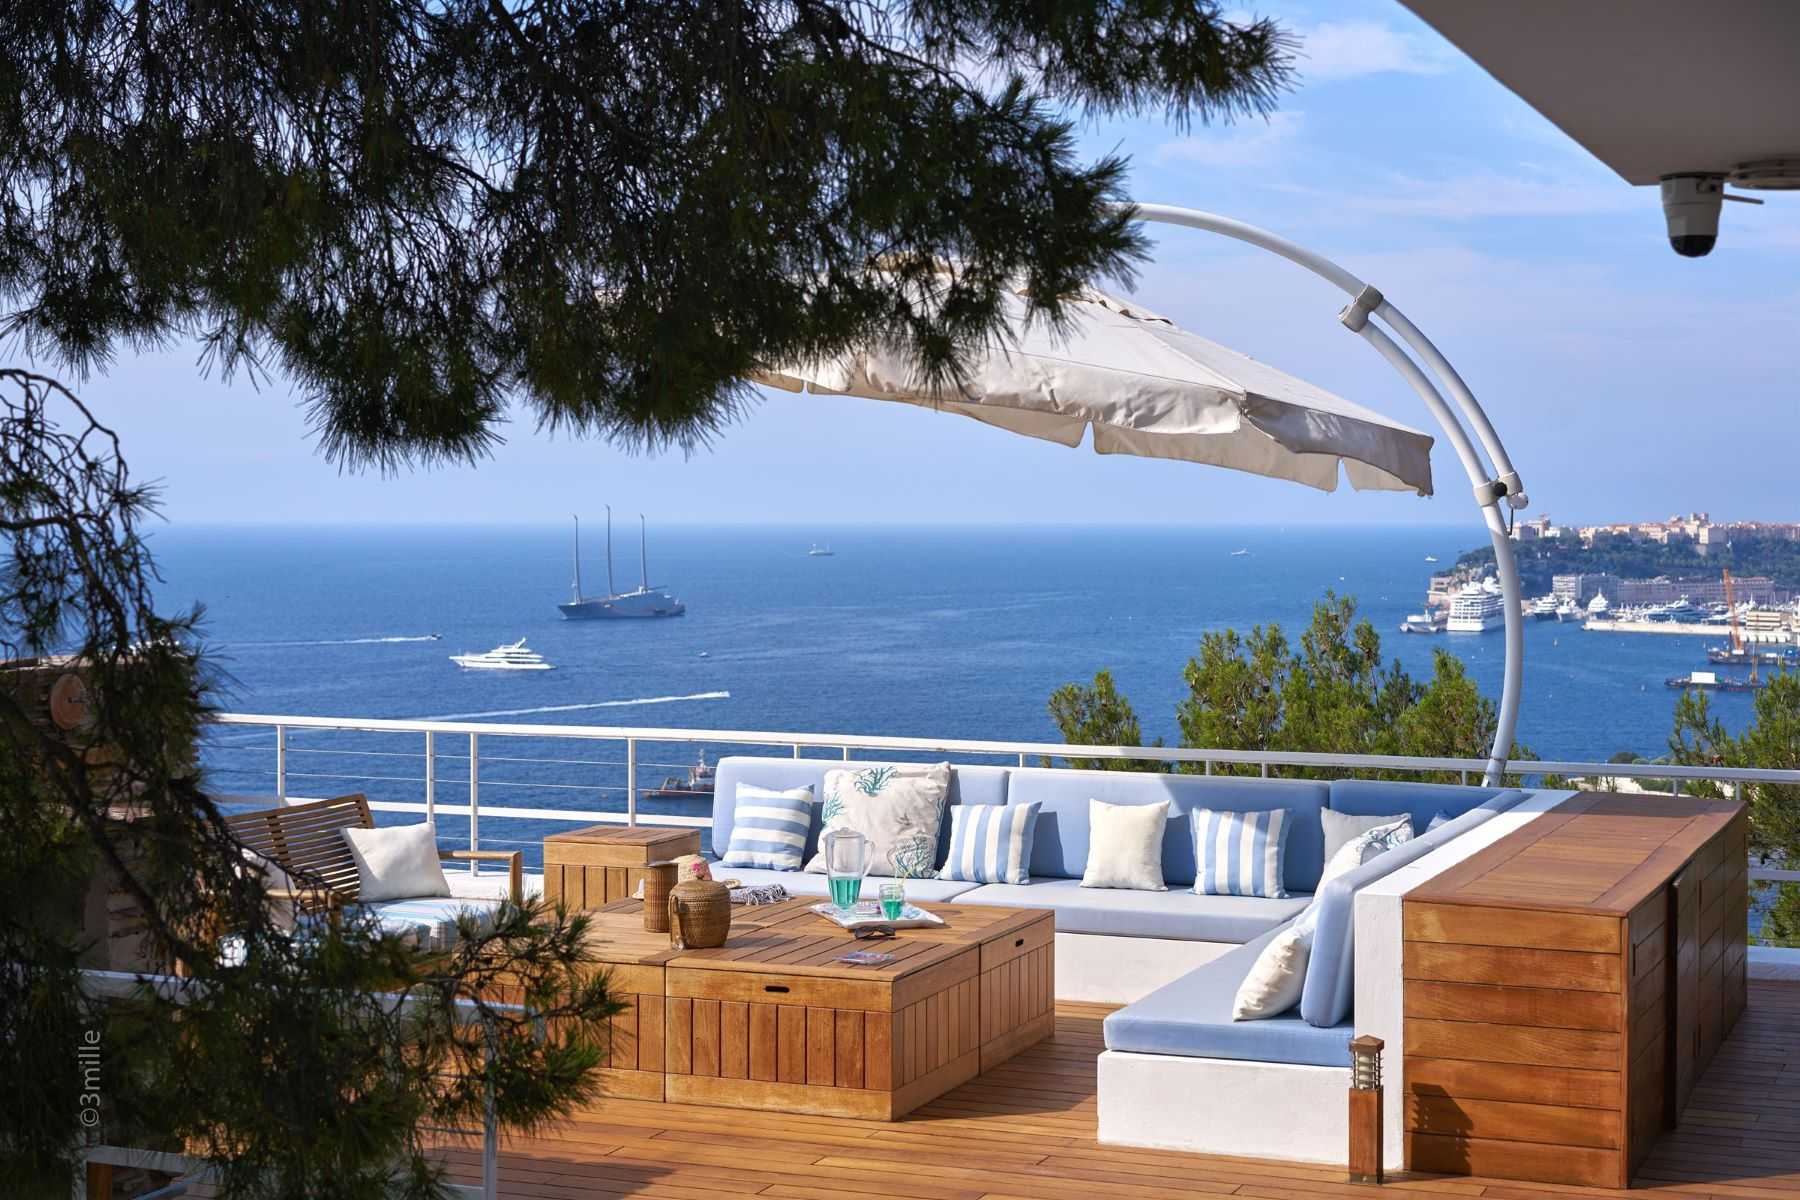 Single Family Home for Sale at Prestigious Property at the gates of Monaco - 747sq.m Roquebrune Cap Martin, Provence-Alpes-Cote D'Azur 06190 France